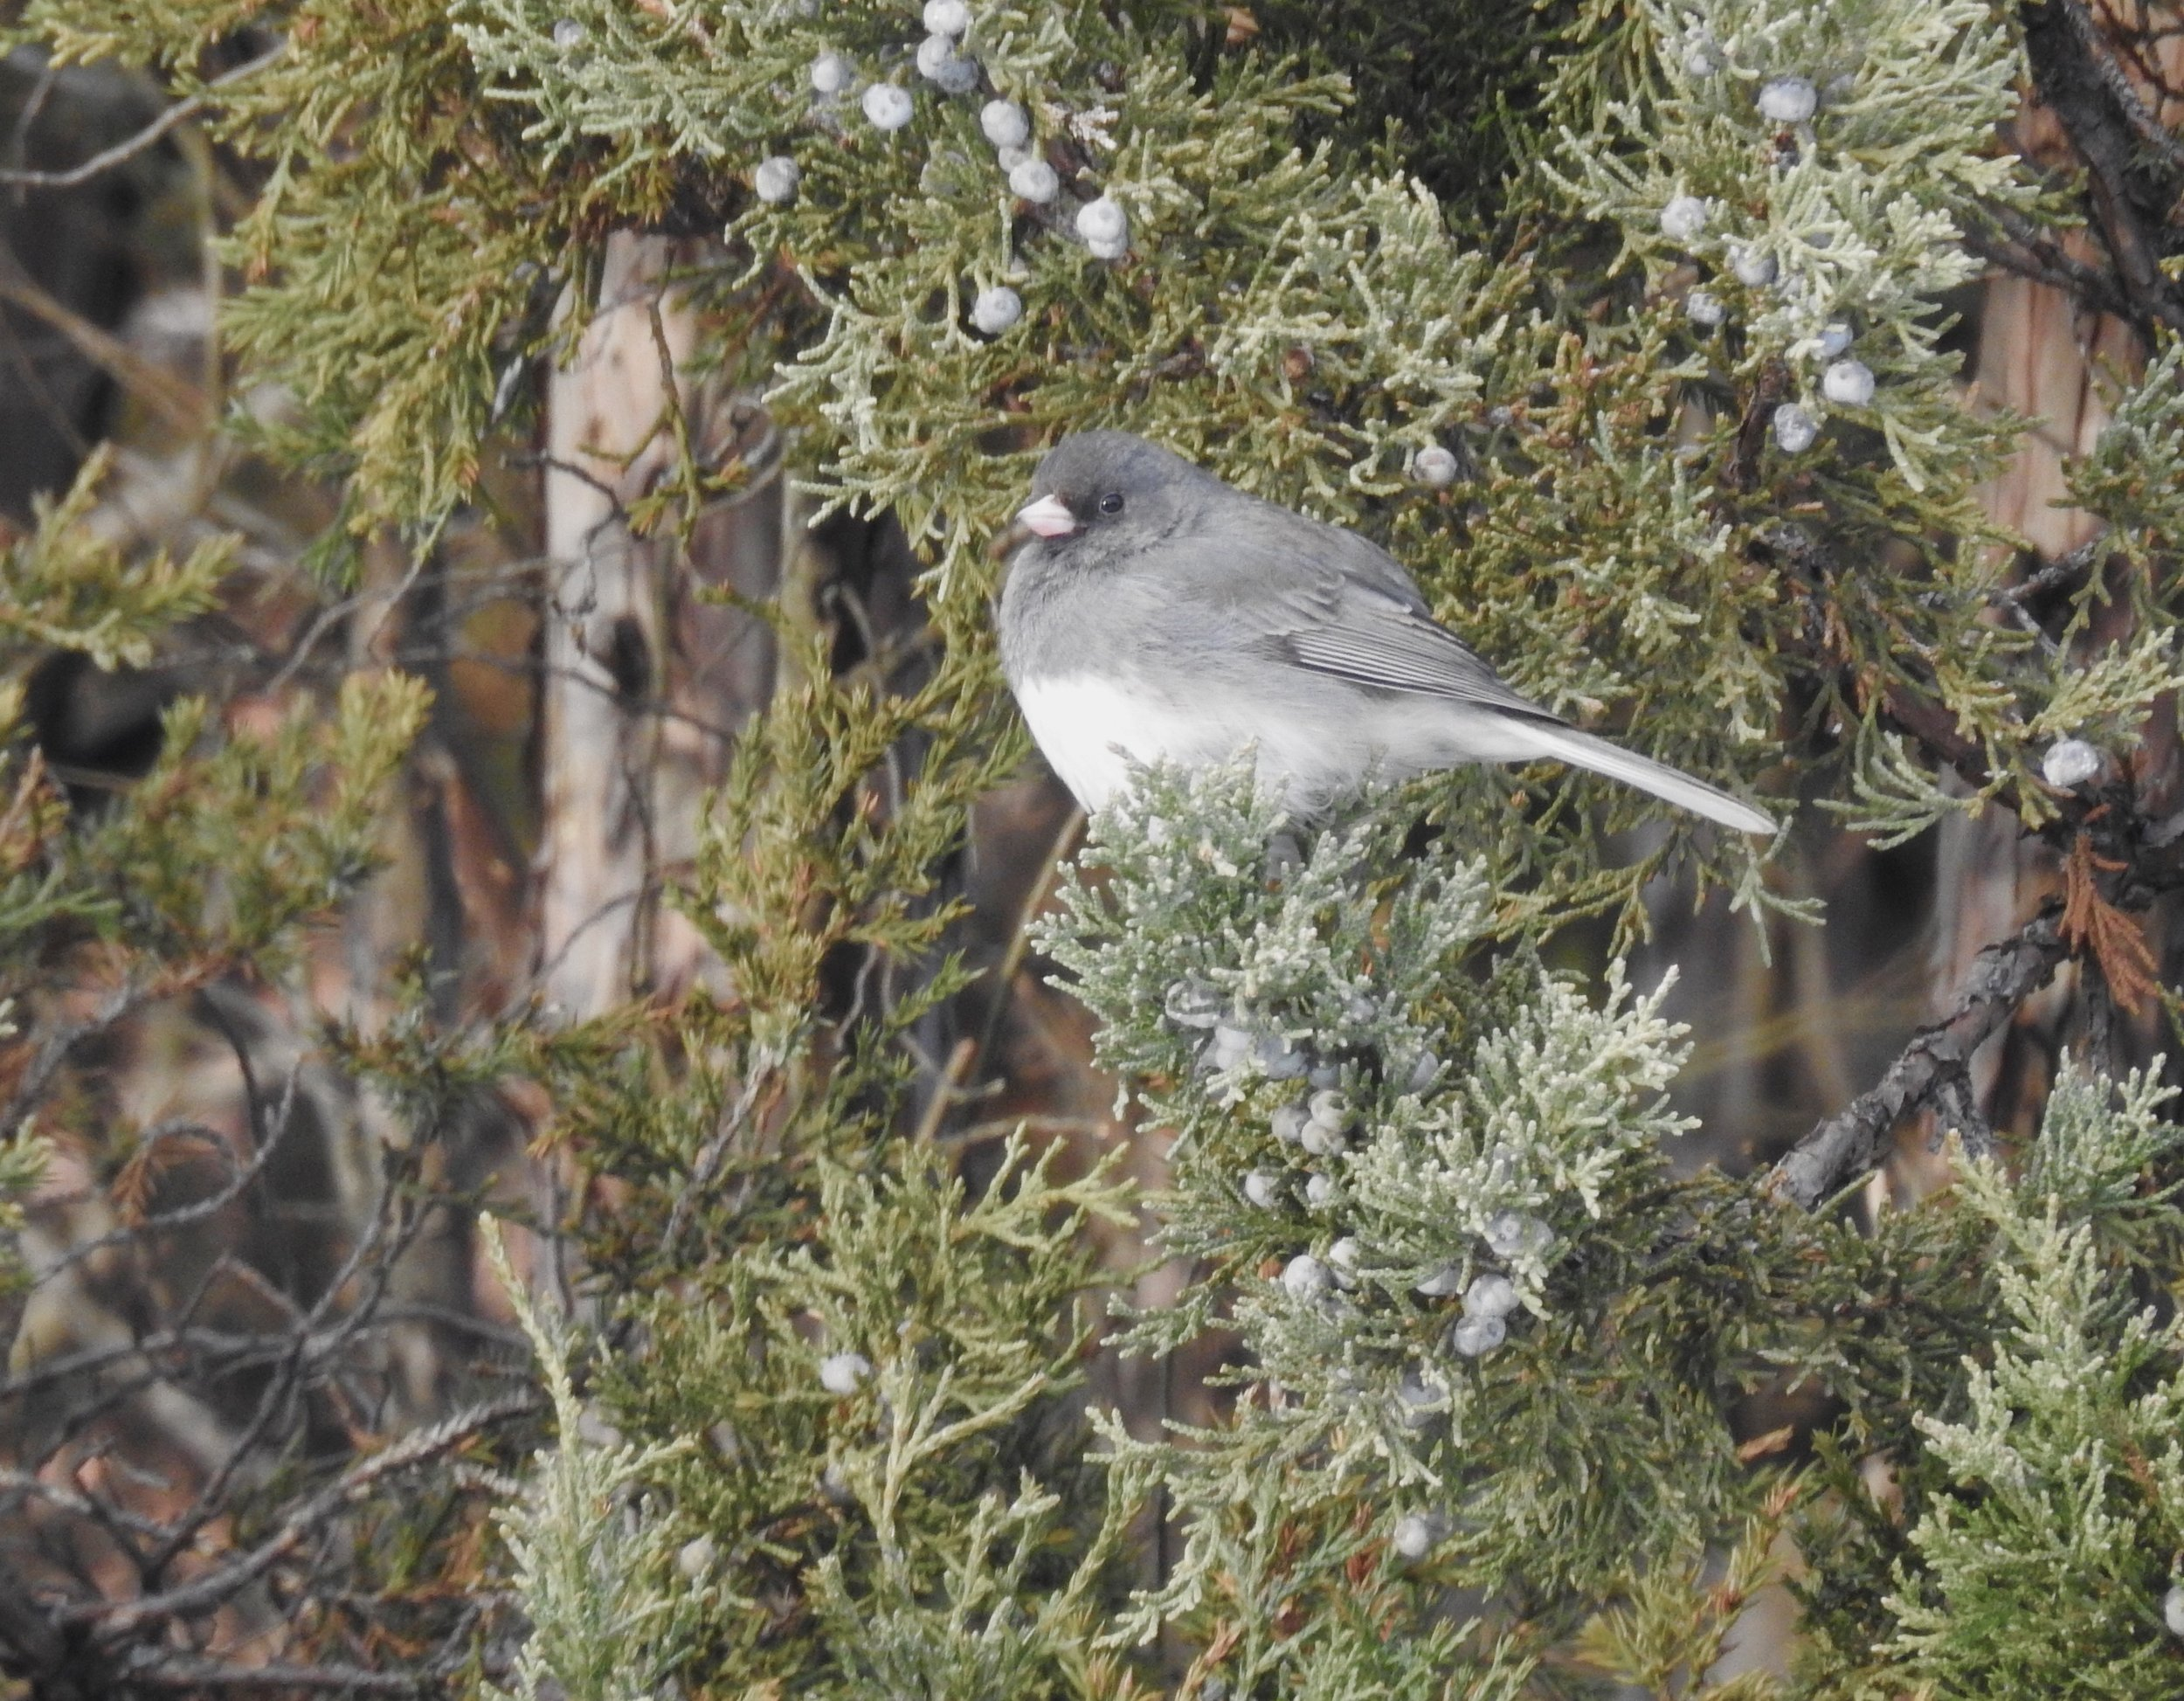 Dark-eyed Juncos (Snowbirds) are still around, but will fly back north soon. Picture by Toribird.